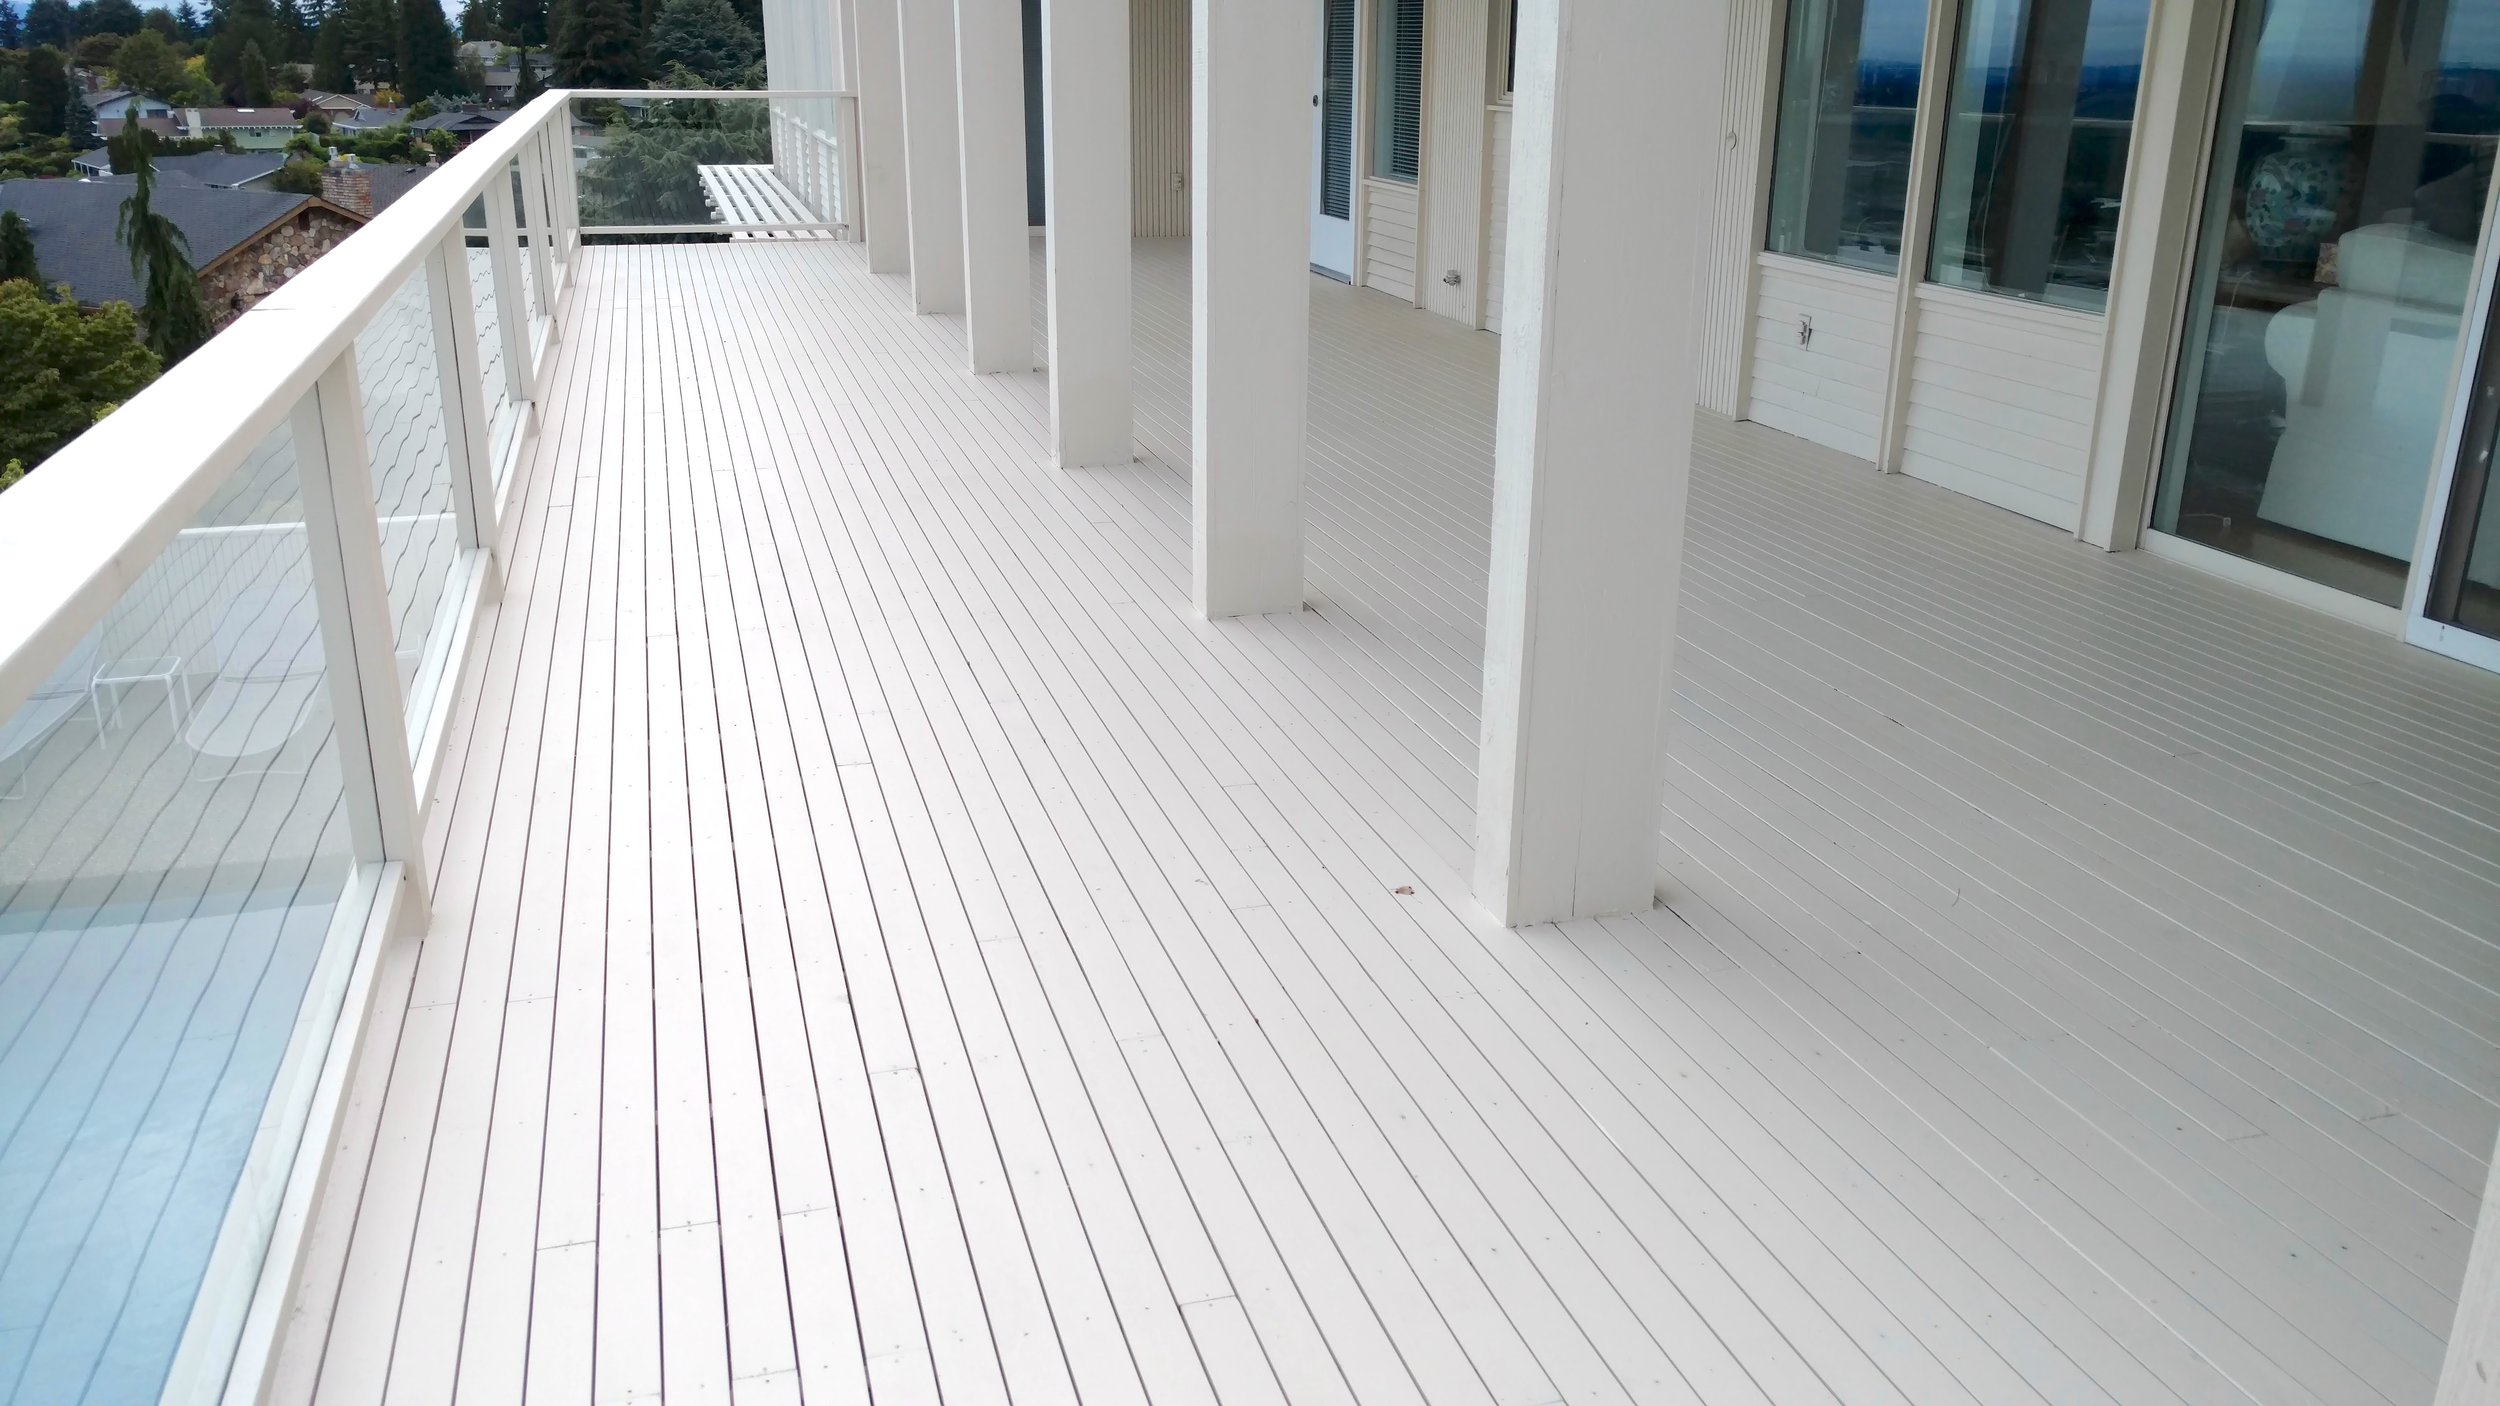 Deck coating Bellevue WA.jpg